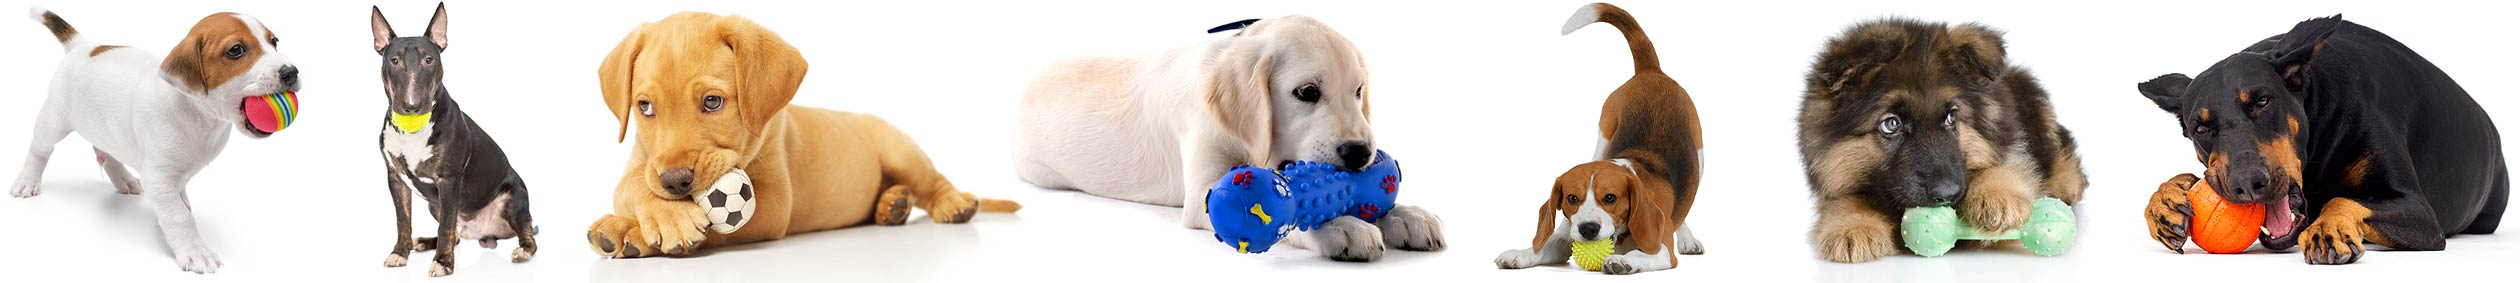 Cute Dogs playing with squeaky chew toys